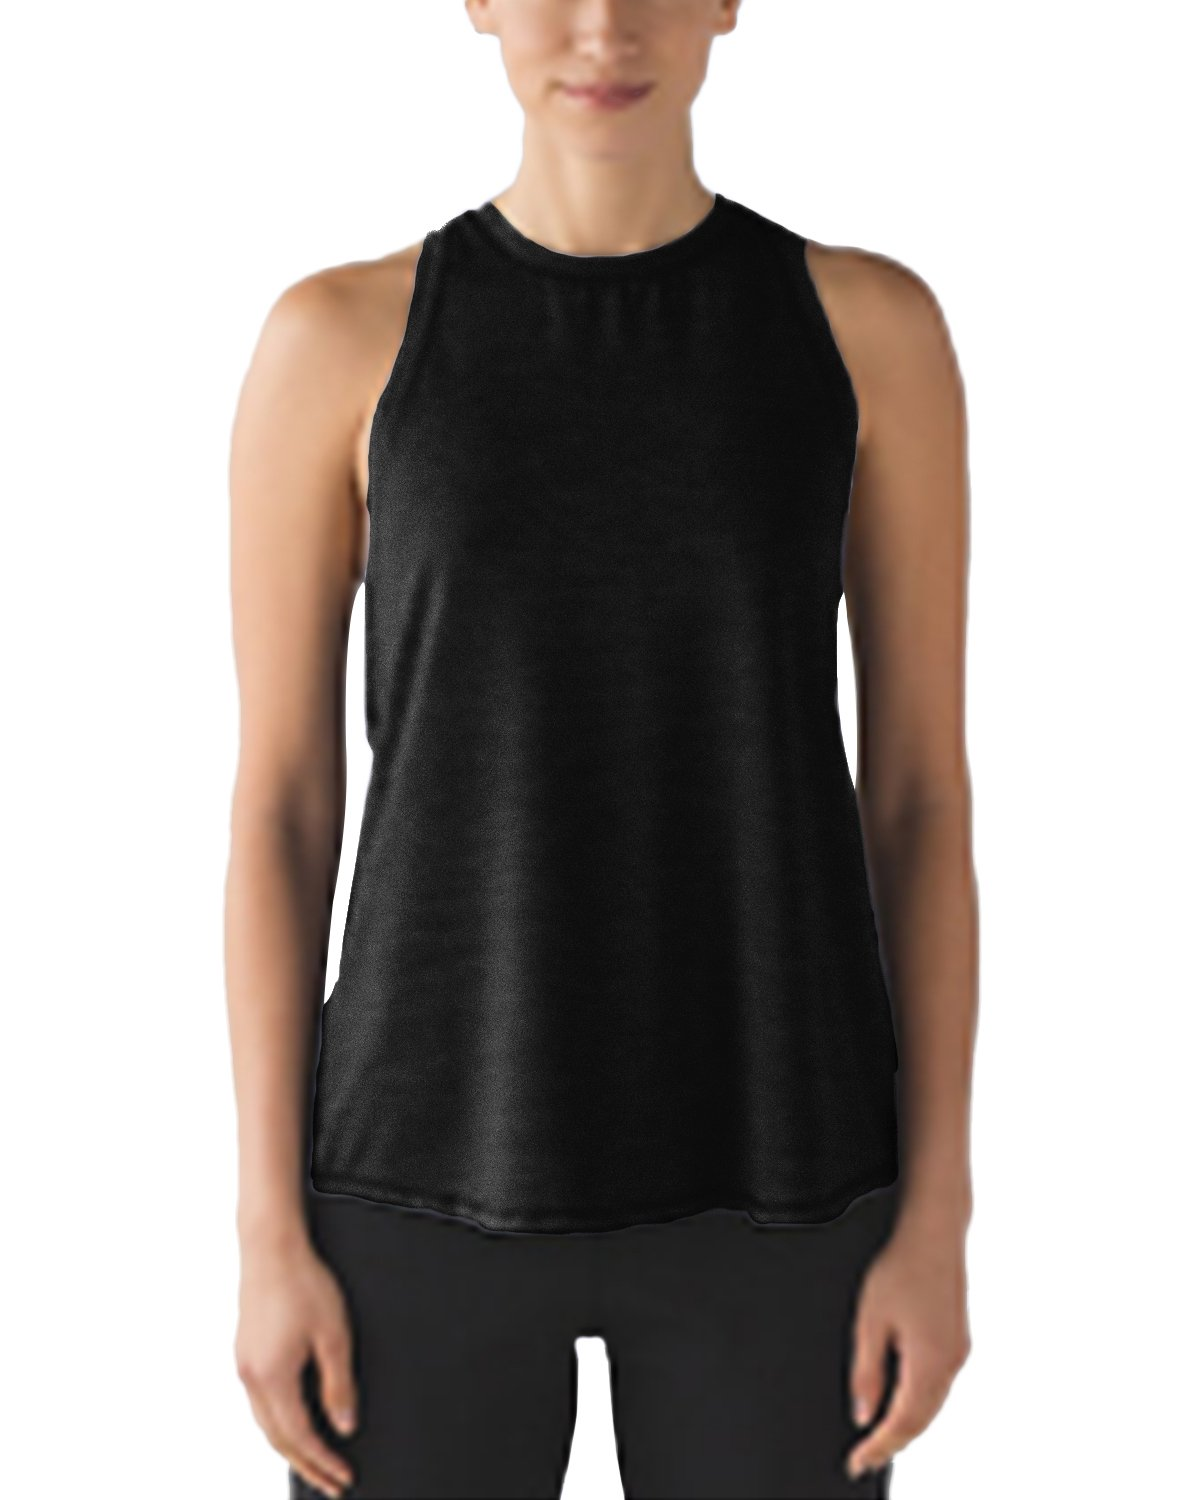 PODOM Women's Yoga Tops Athletic Tees Workout Tanks Crew Neck Shirts Activewear (S, Black)